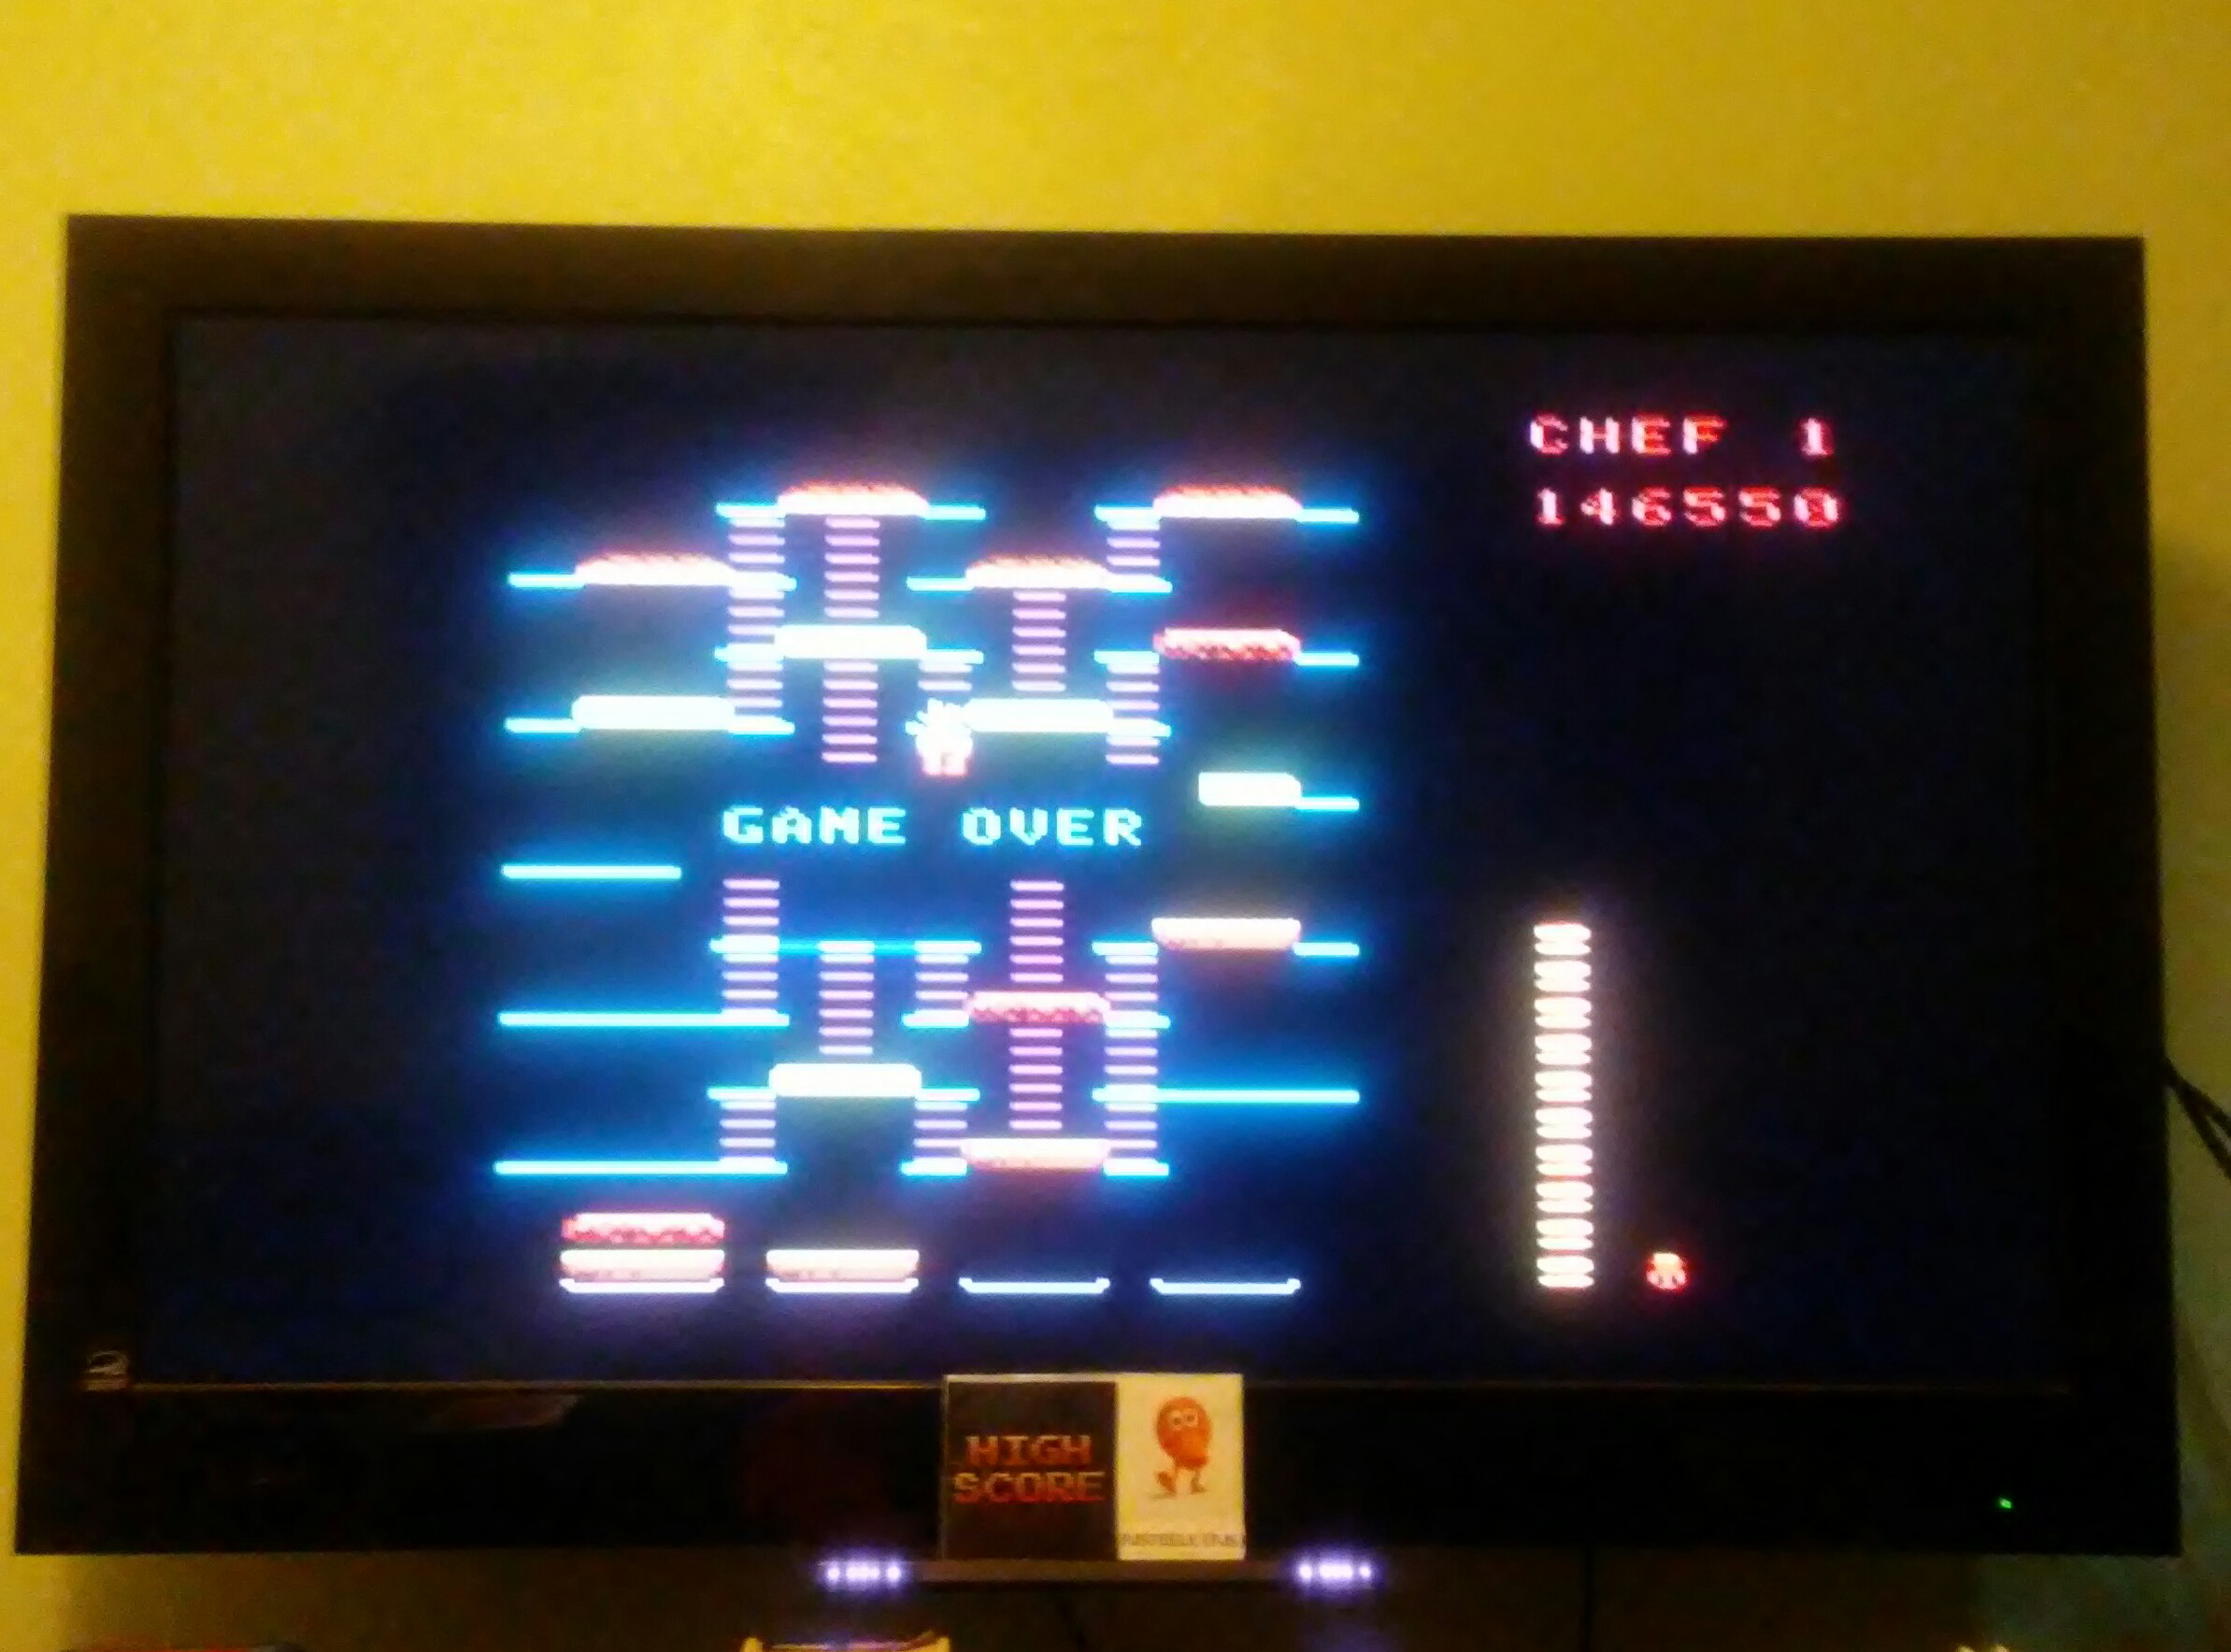 Pjsteele: BurgerTime (Colecovision Emulated) 146,550 points on 2018-04-06 19:32:32